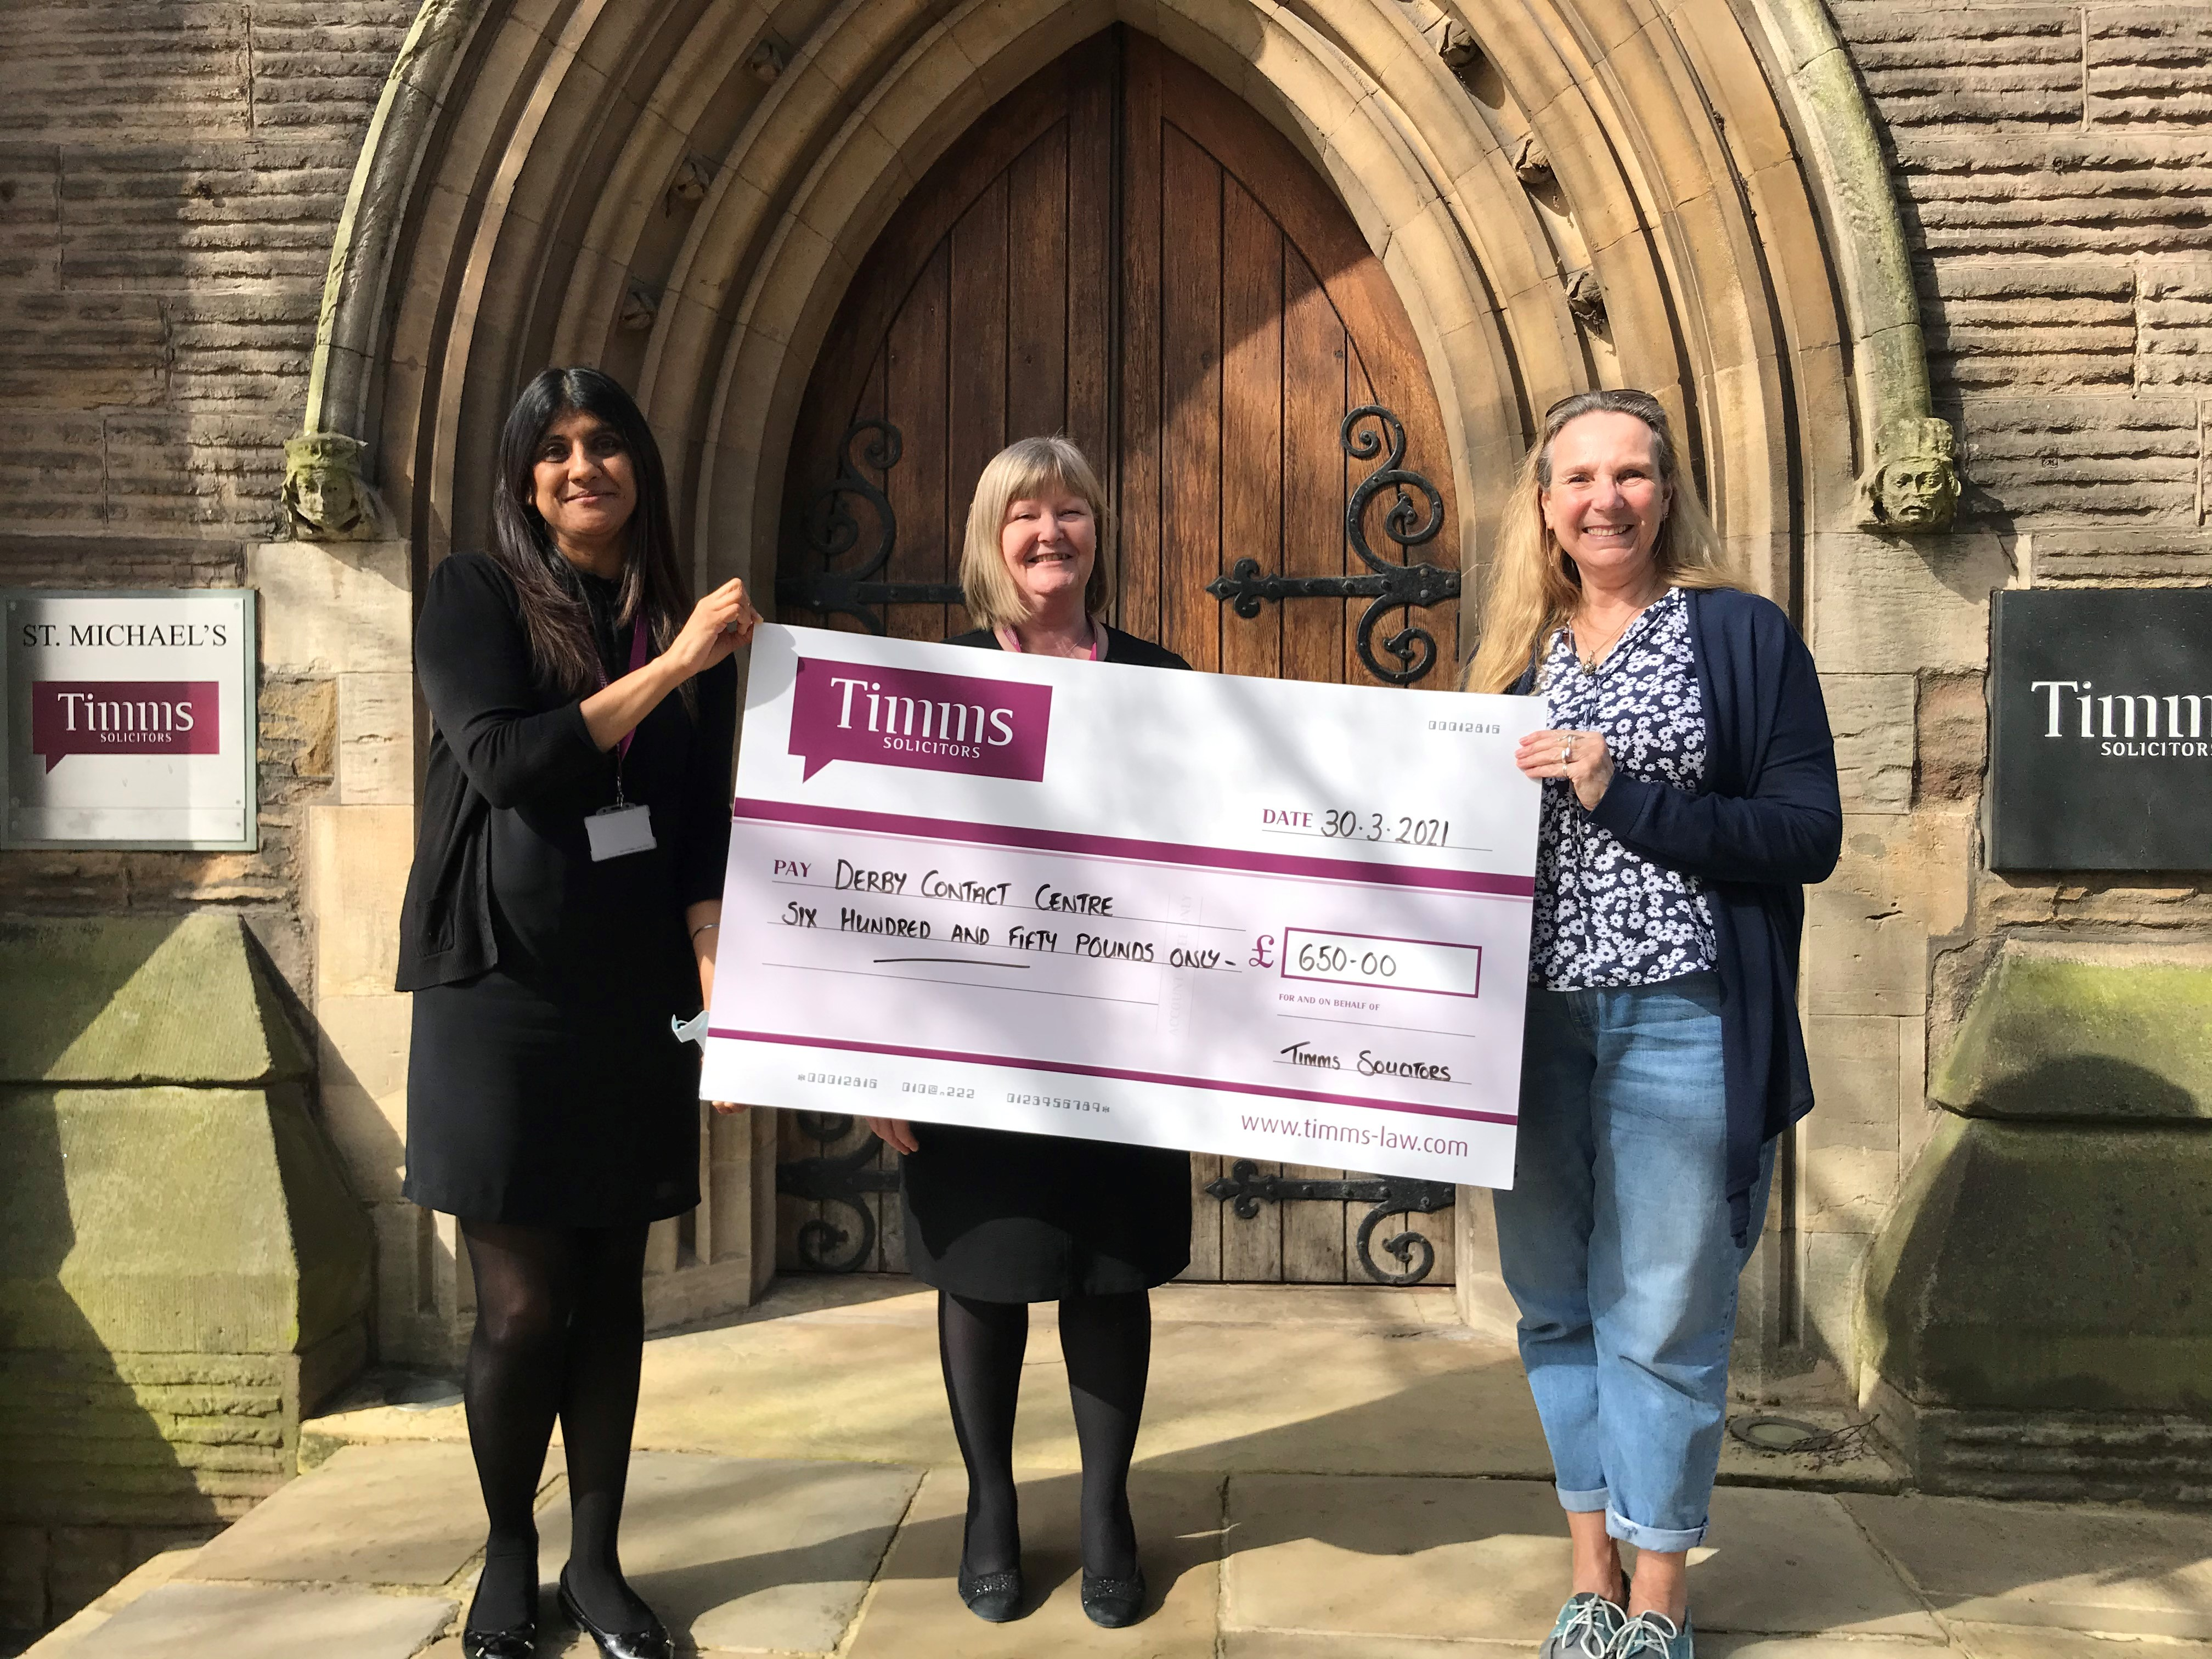 Timms Solicitors' First Virtual Conference Supports Local Charities